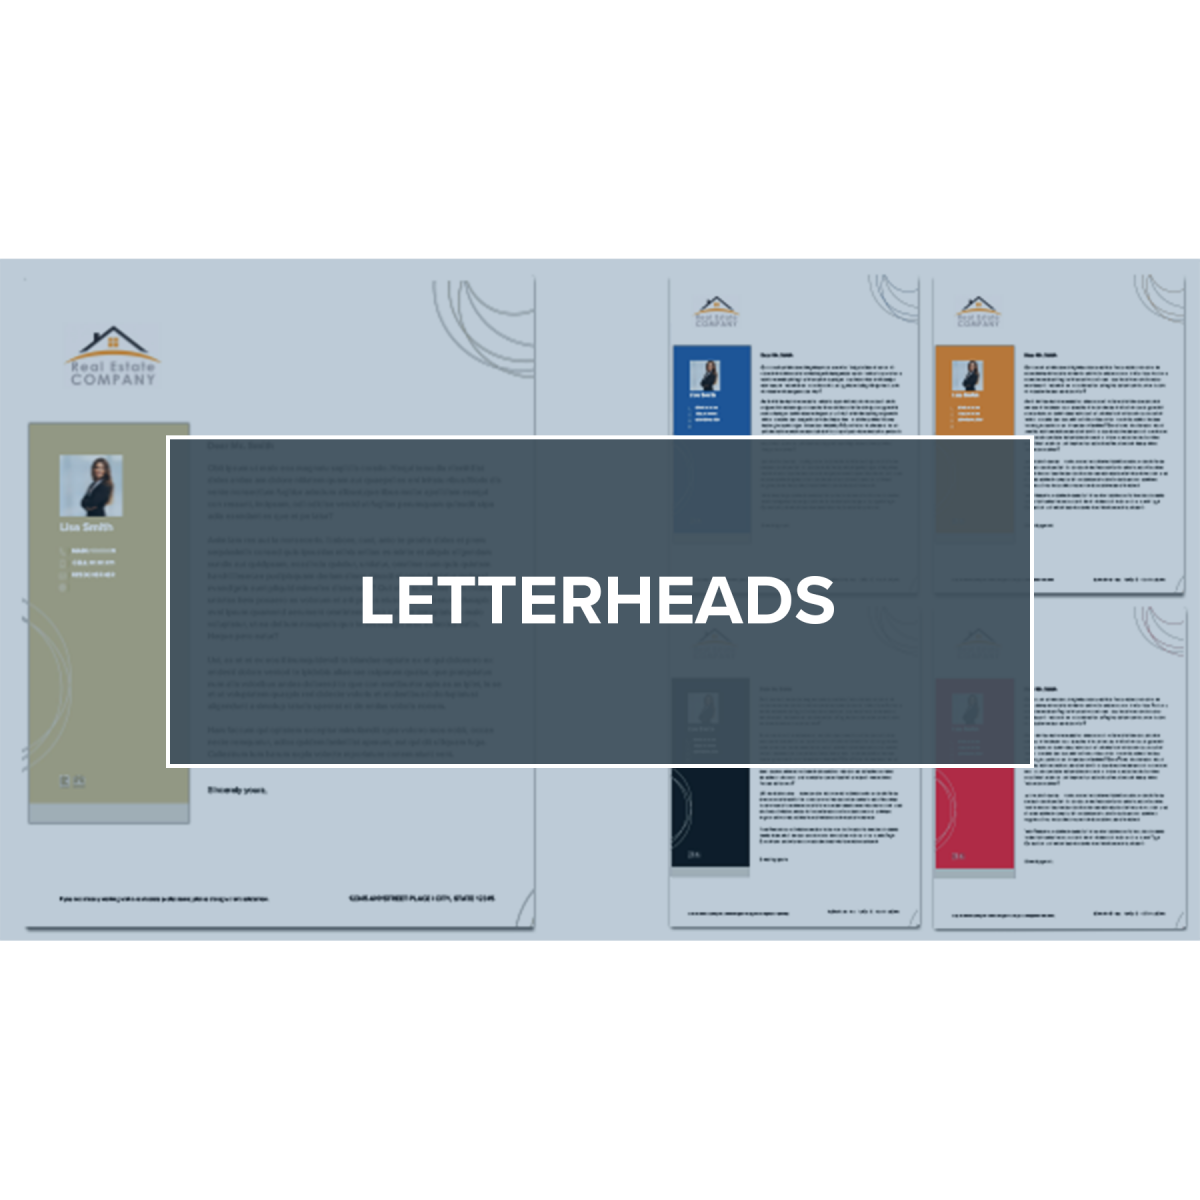 Free Real Estate Letter Templates | Breakthrough Brokers Fsbo Letter Templates Free on real estate farming letters free, expired listing letters templates free, sales flyer templates free,